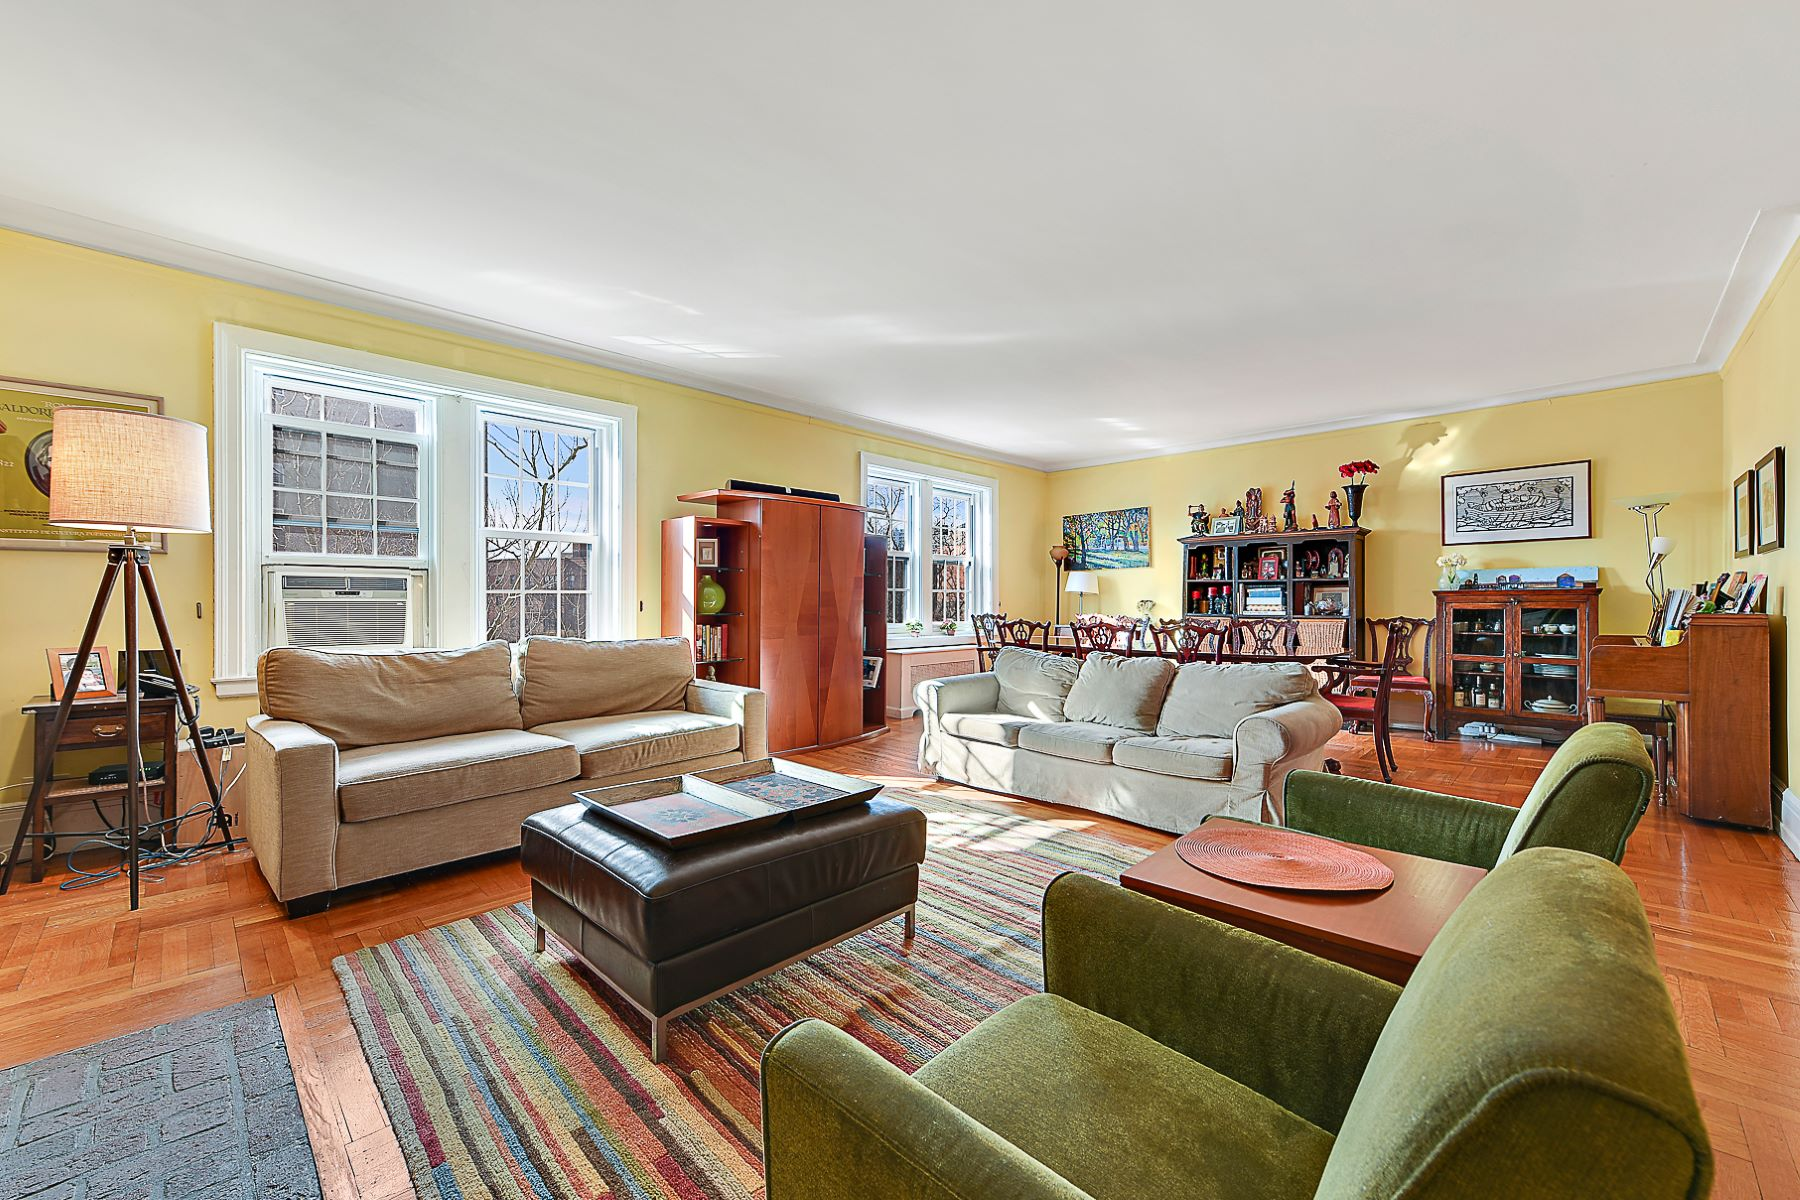 Co-op for Sale at Spacious and Elegant Prewar 3 Bedroom with Washer and Dryer 525 West 238 Street 4P, Riverdale, New York, 10463 United States